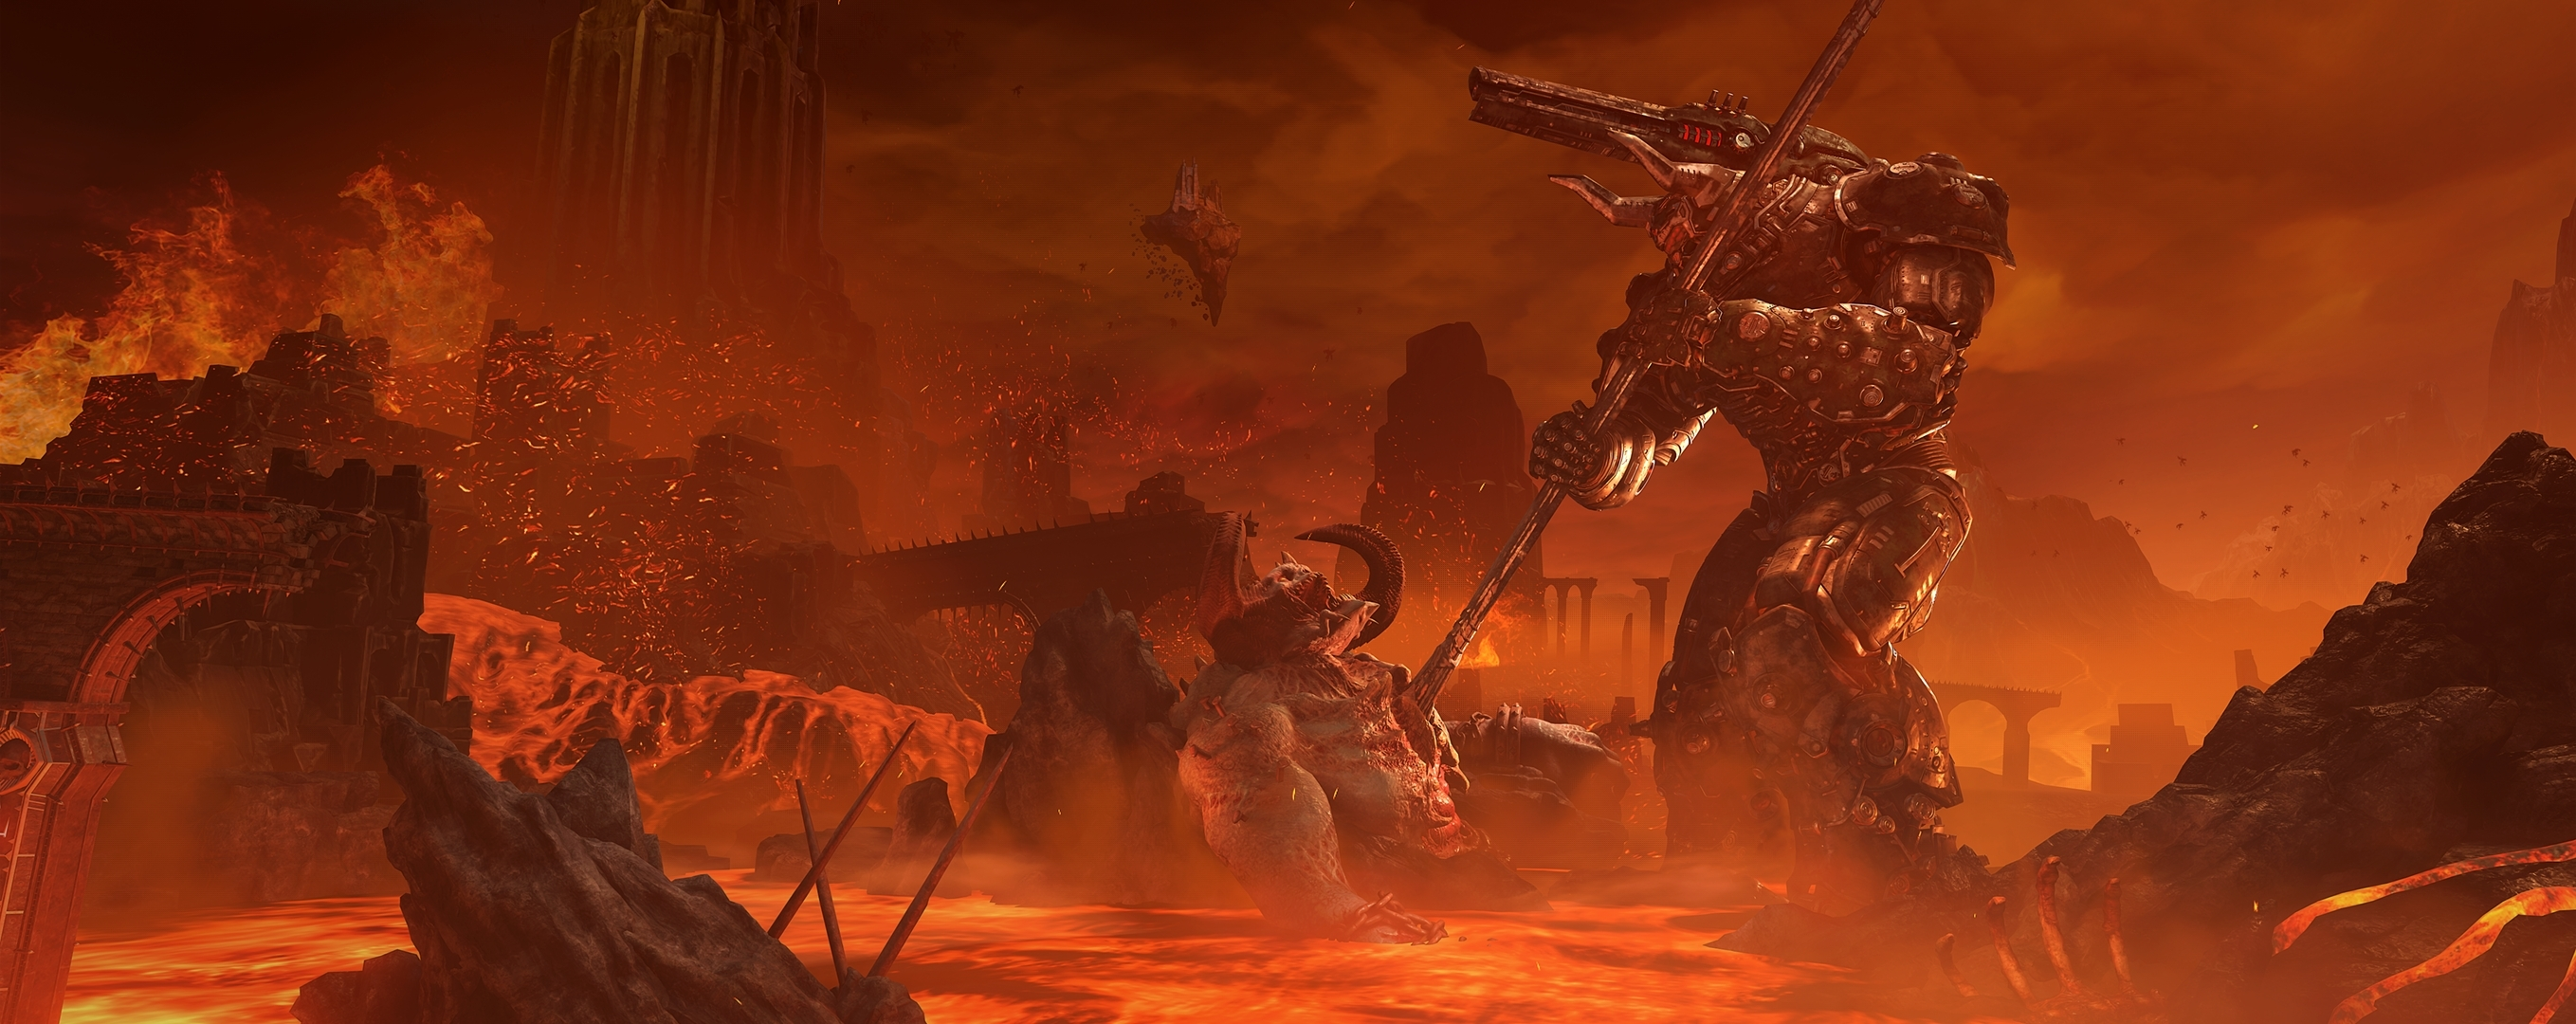 750x1334 Doom Eternal 2020 Iphone 6 Iphone 6s Iphone 7 Wallpaper Hd Games 4k Wallpapers Images Photos And Background